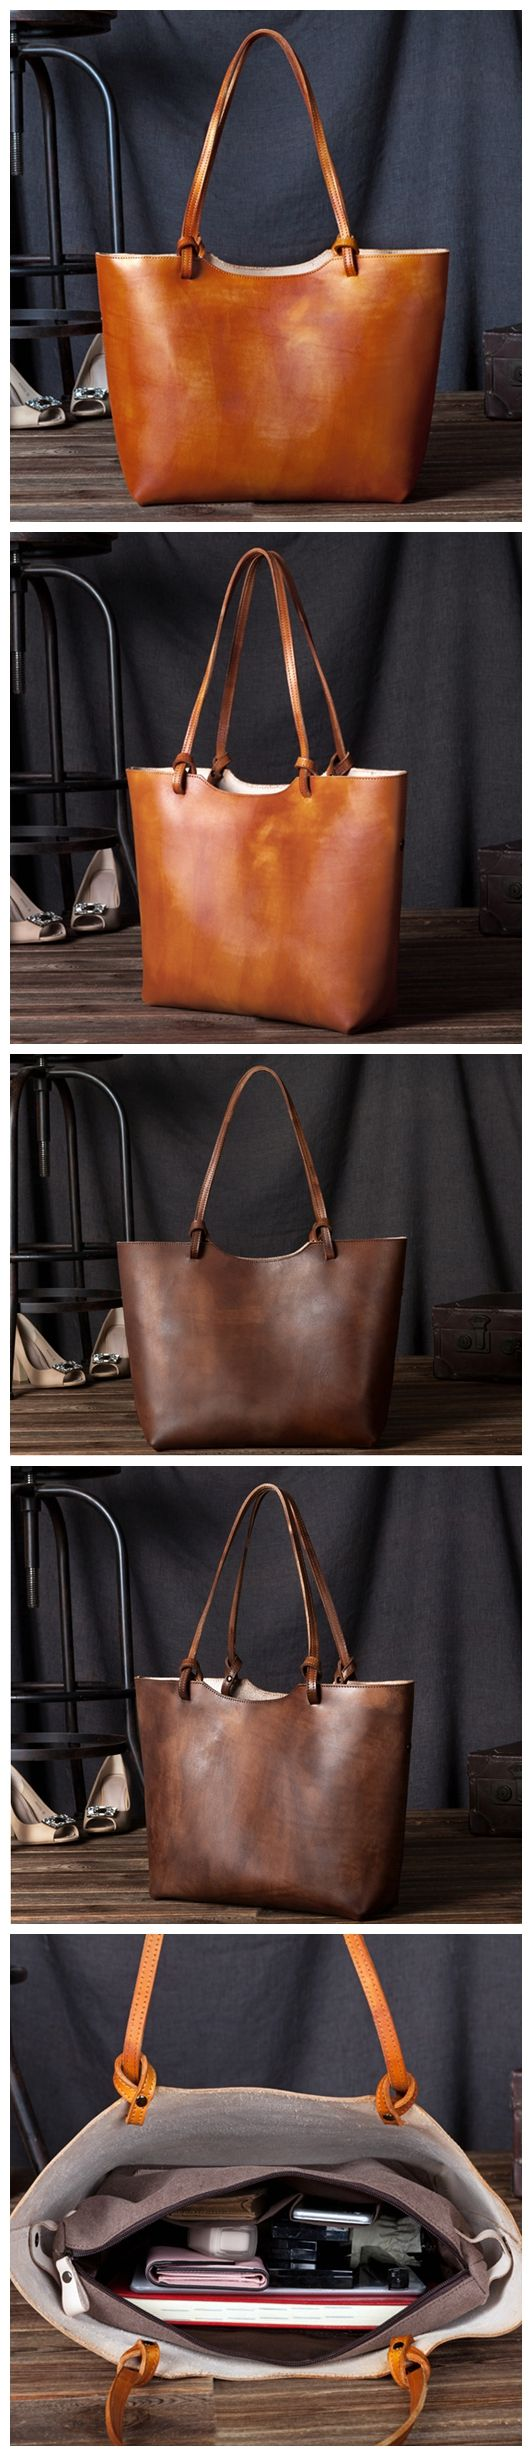 Handmade women fashion leather tote bag shoulder bag handbag shopper bag C105 Overview: Design: Fashion & Modern Leather Women Tote In Stock: 3-5 days For Making Include: Only Tote Bag Custom: No Colo